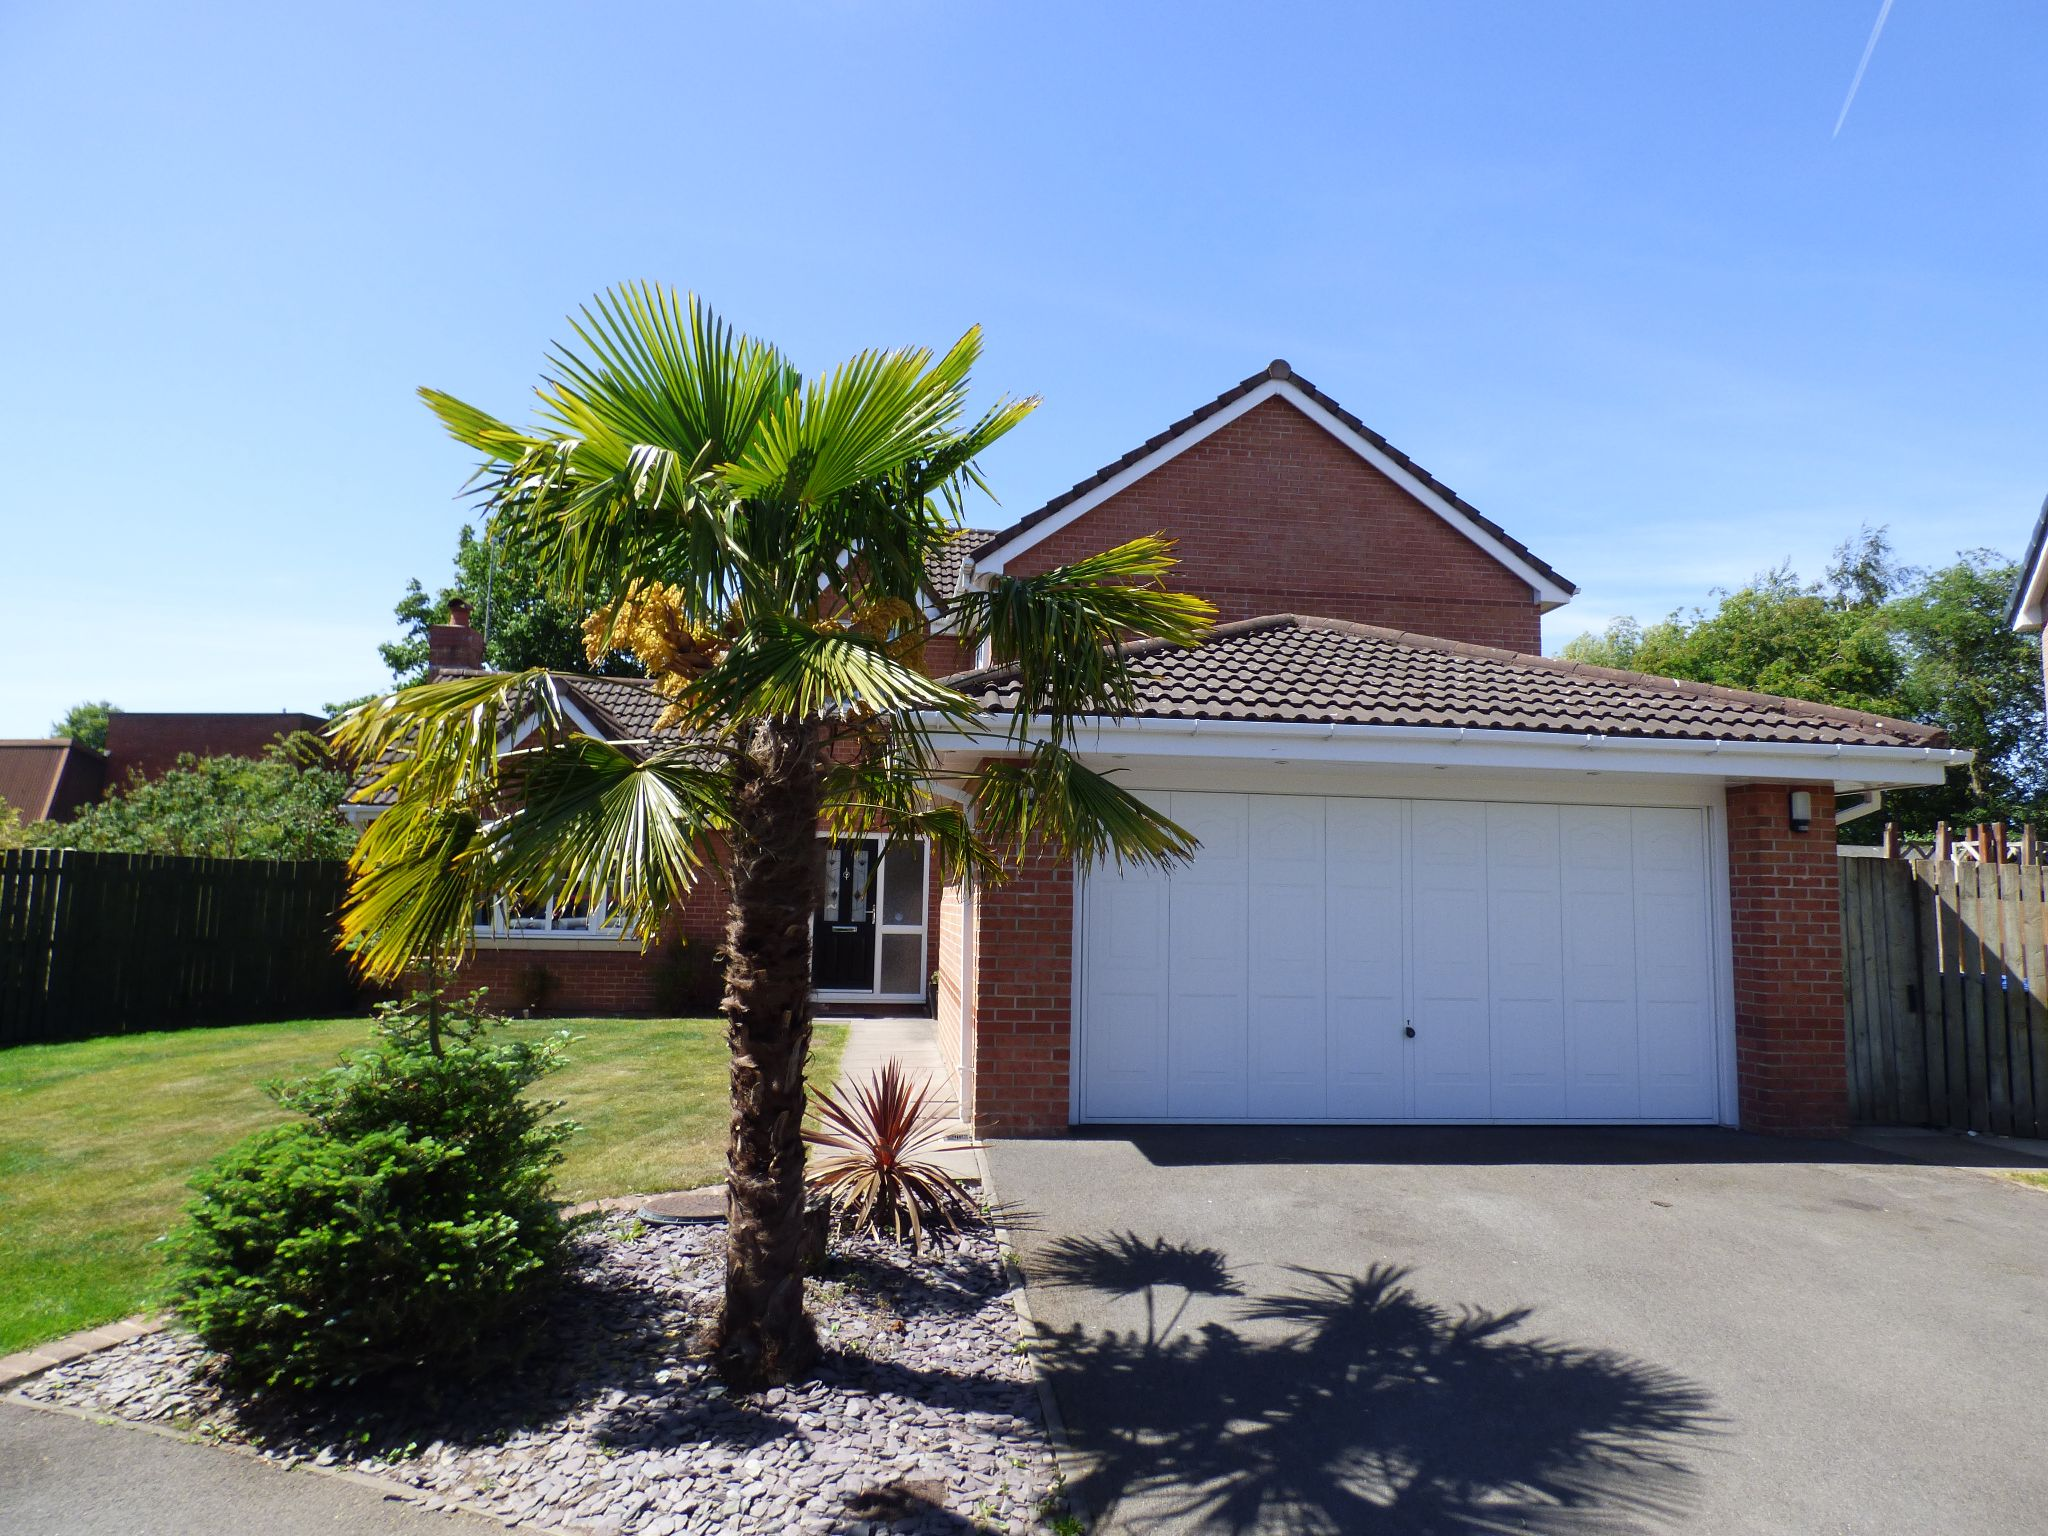 4 Bedroom Detached House For Sale - Photograph 20